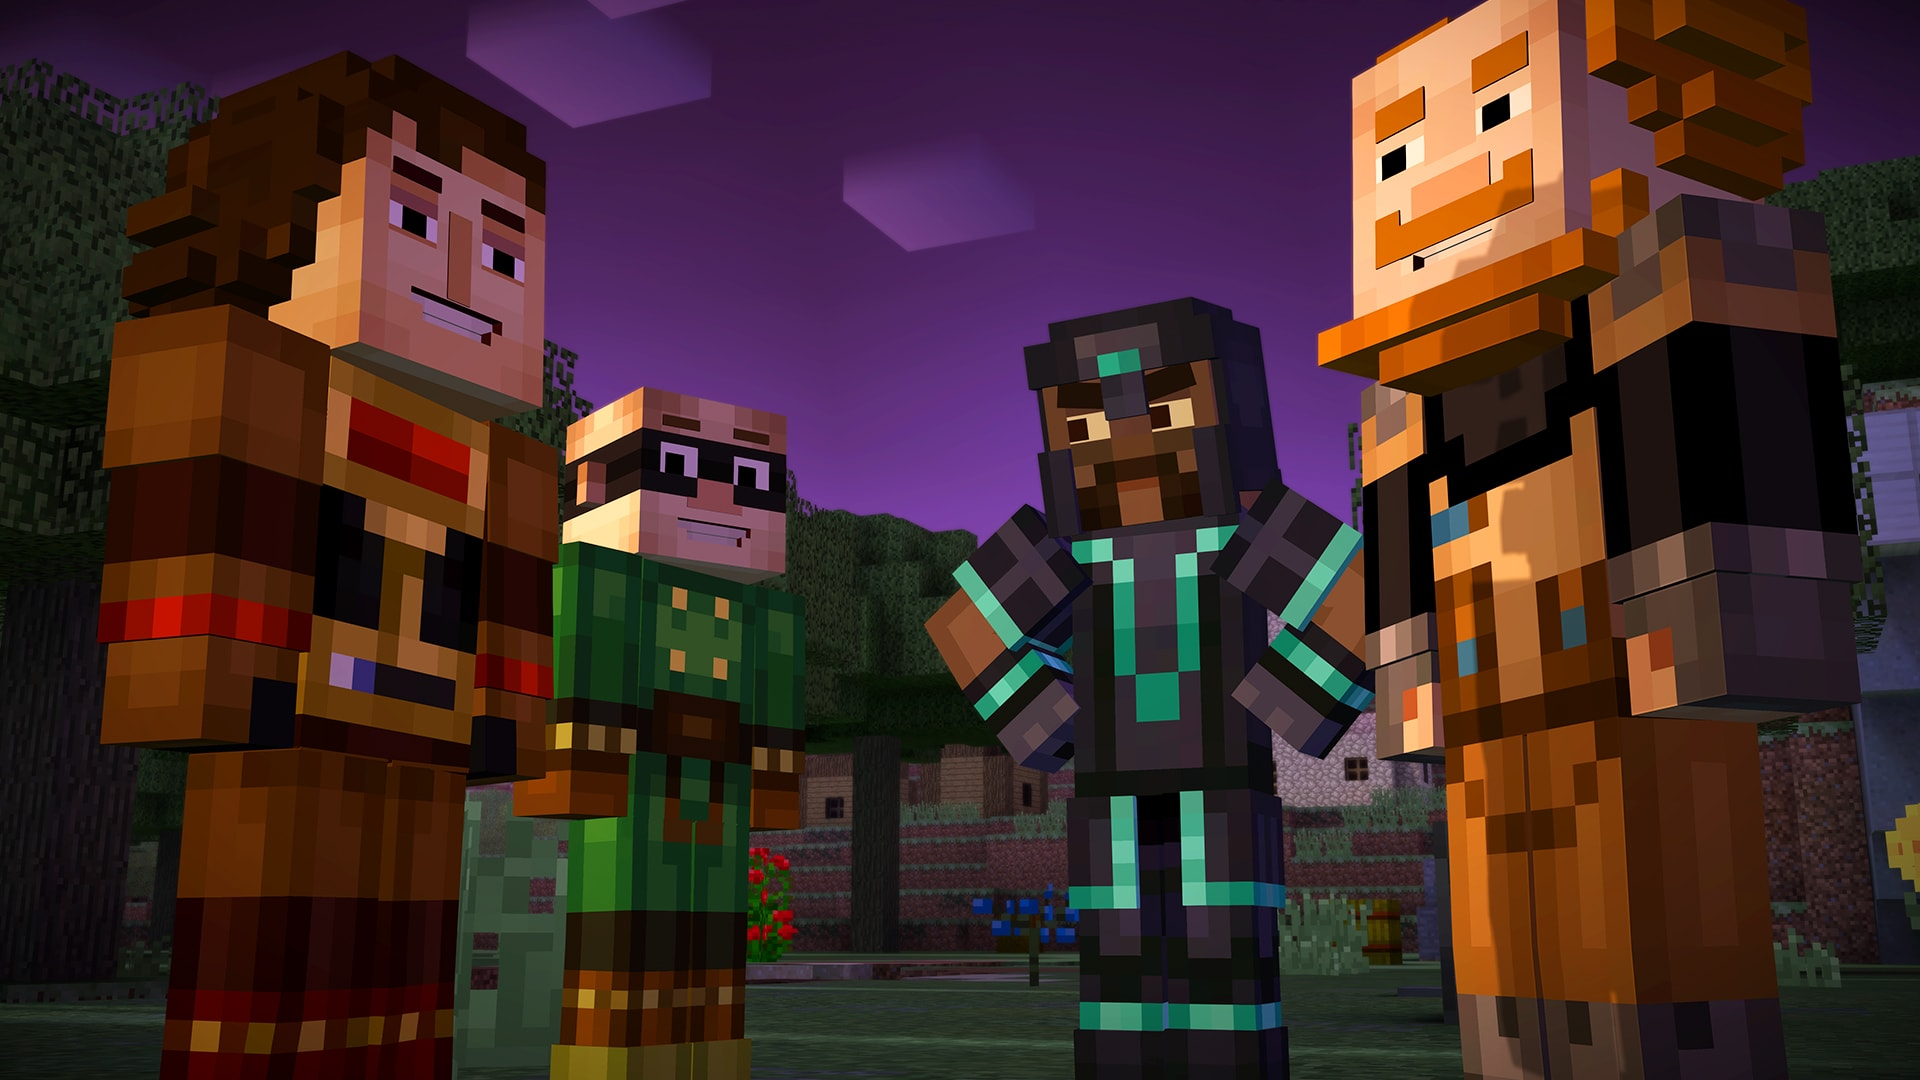 Minecraft: Story Mode - Episode 3: The Last Place You Look Full hd wallpapers